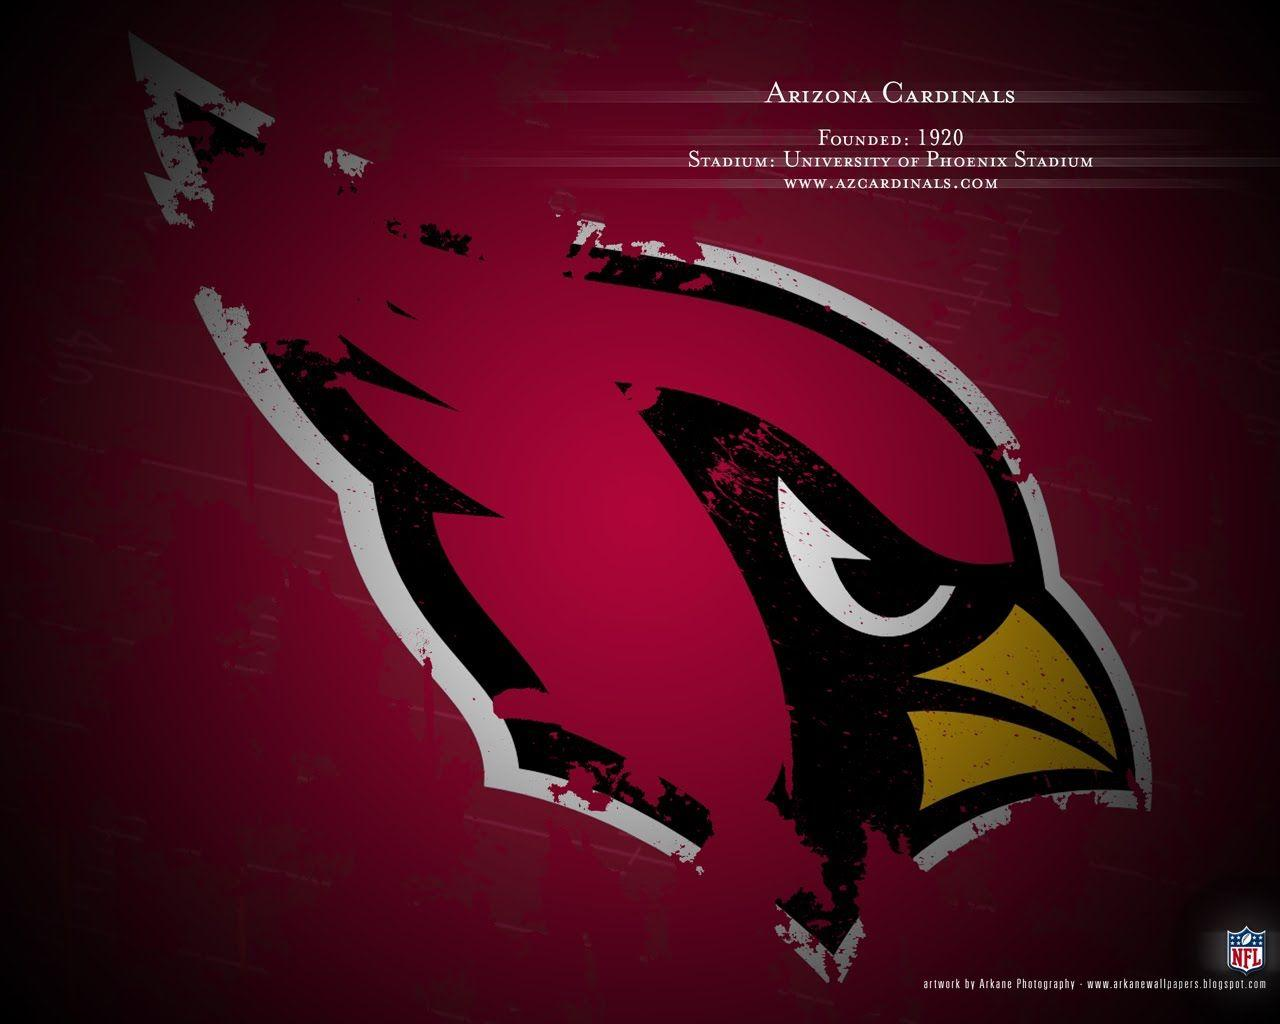 Arizona Cardinals wallpaper | 1280x1024 | #69103